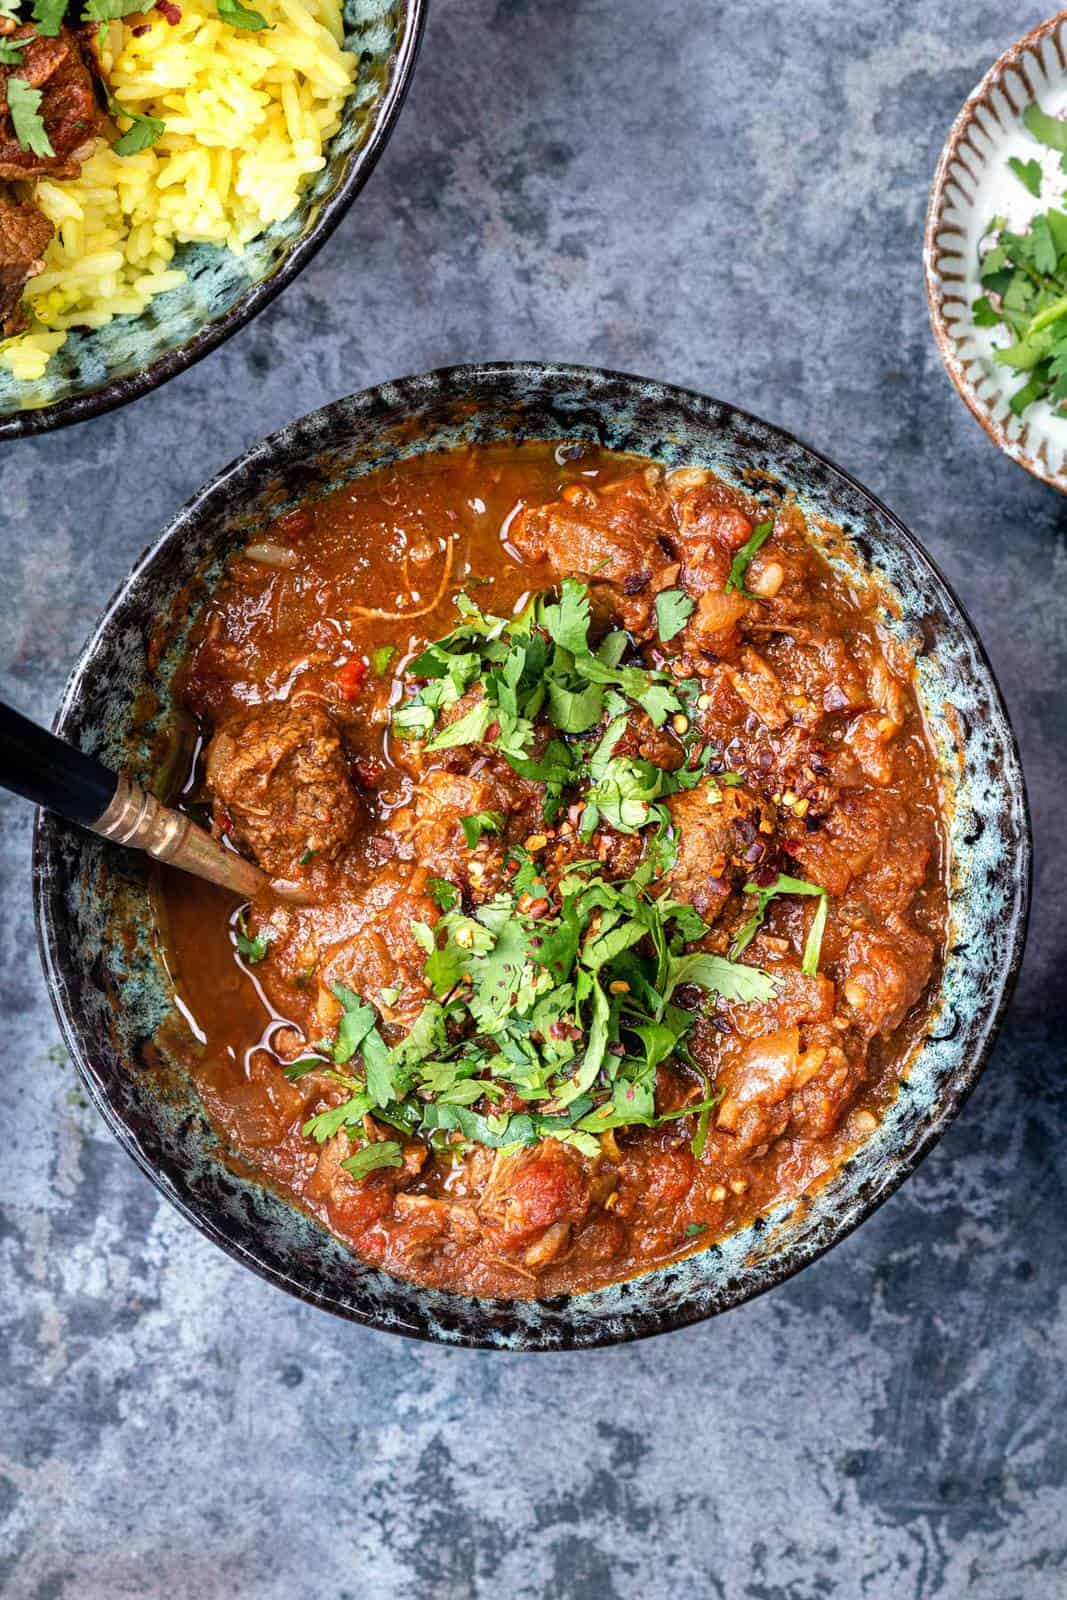 Bowl of tomato-based beef curry garnished with chopped coriander